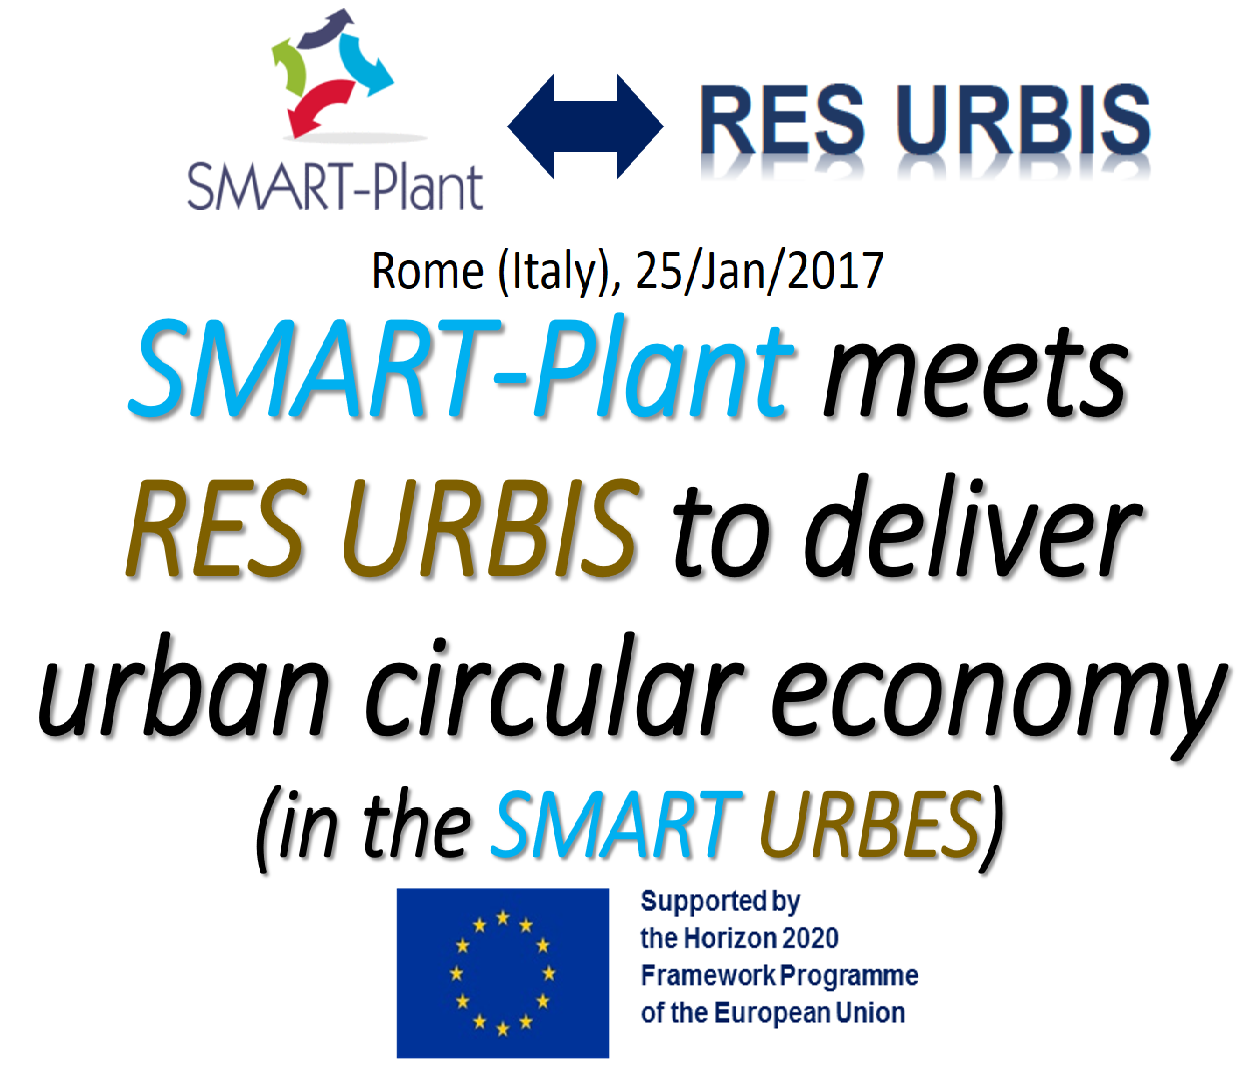 SMART-Plant meets RES-URBIS for alliance within Horizon2020 to deliver urban circular economy